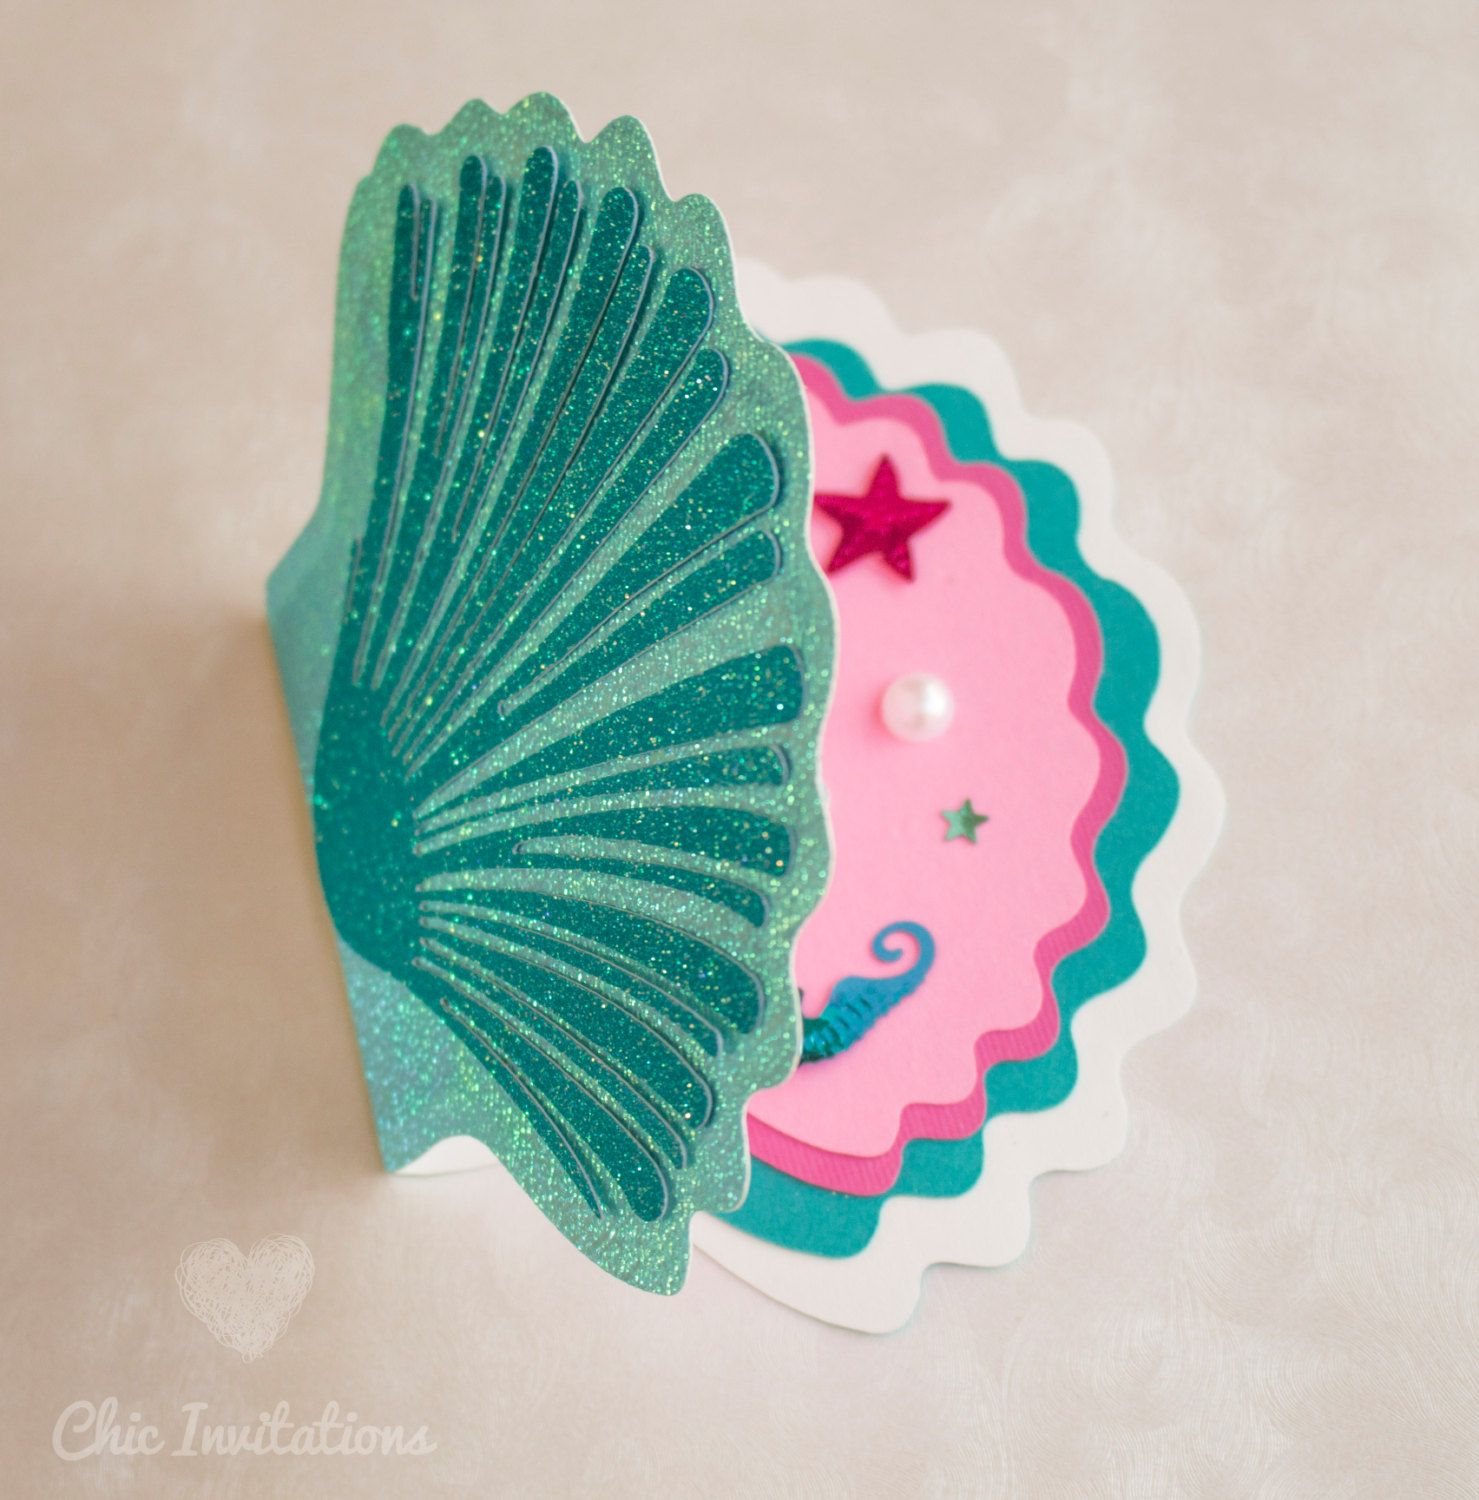 7pk Ultra Sparkle Mermaid Magnets